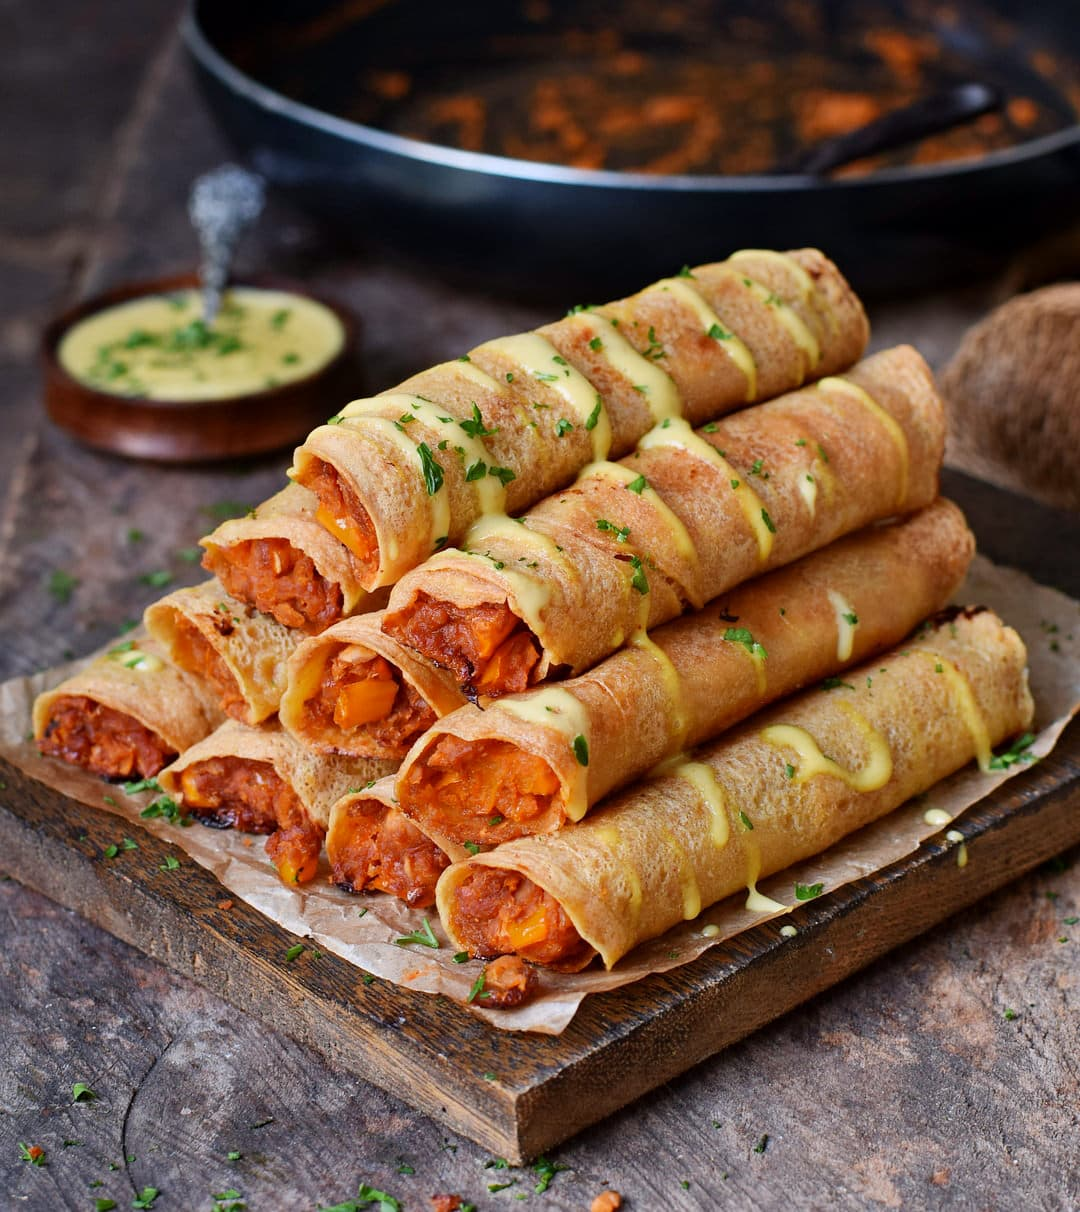 Baked Buffalo chickpea taquitos from the side